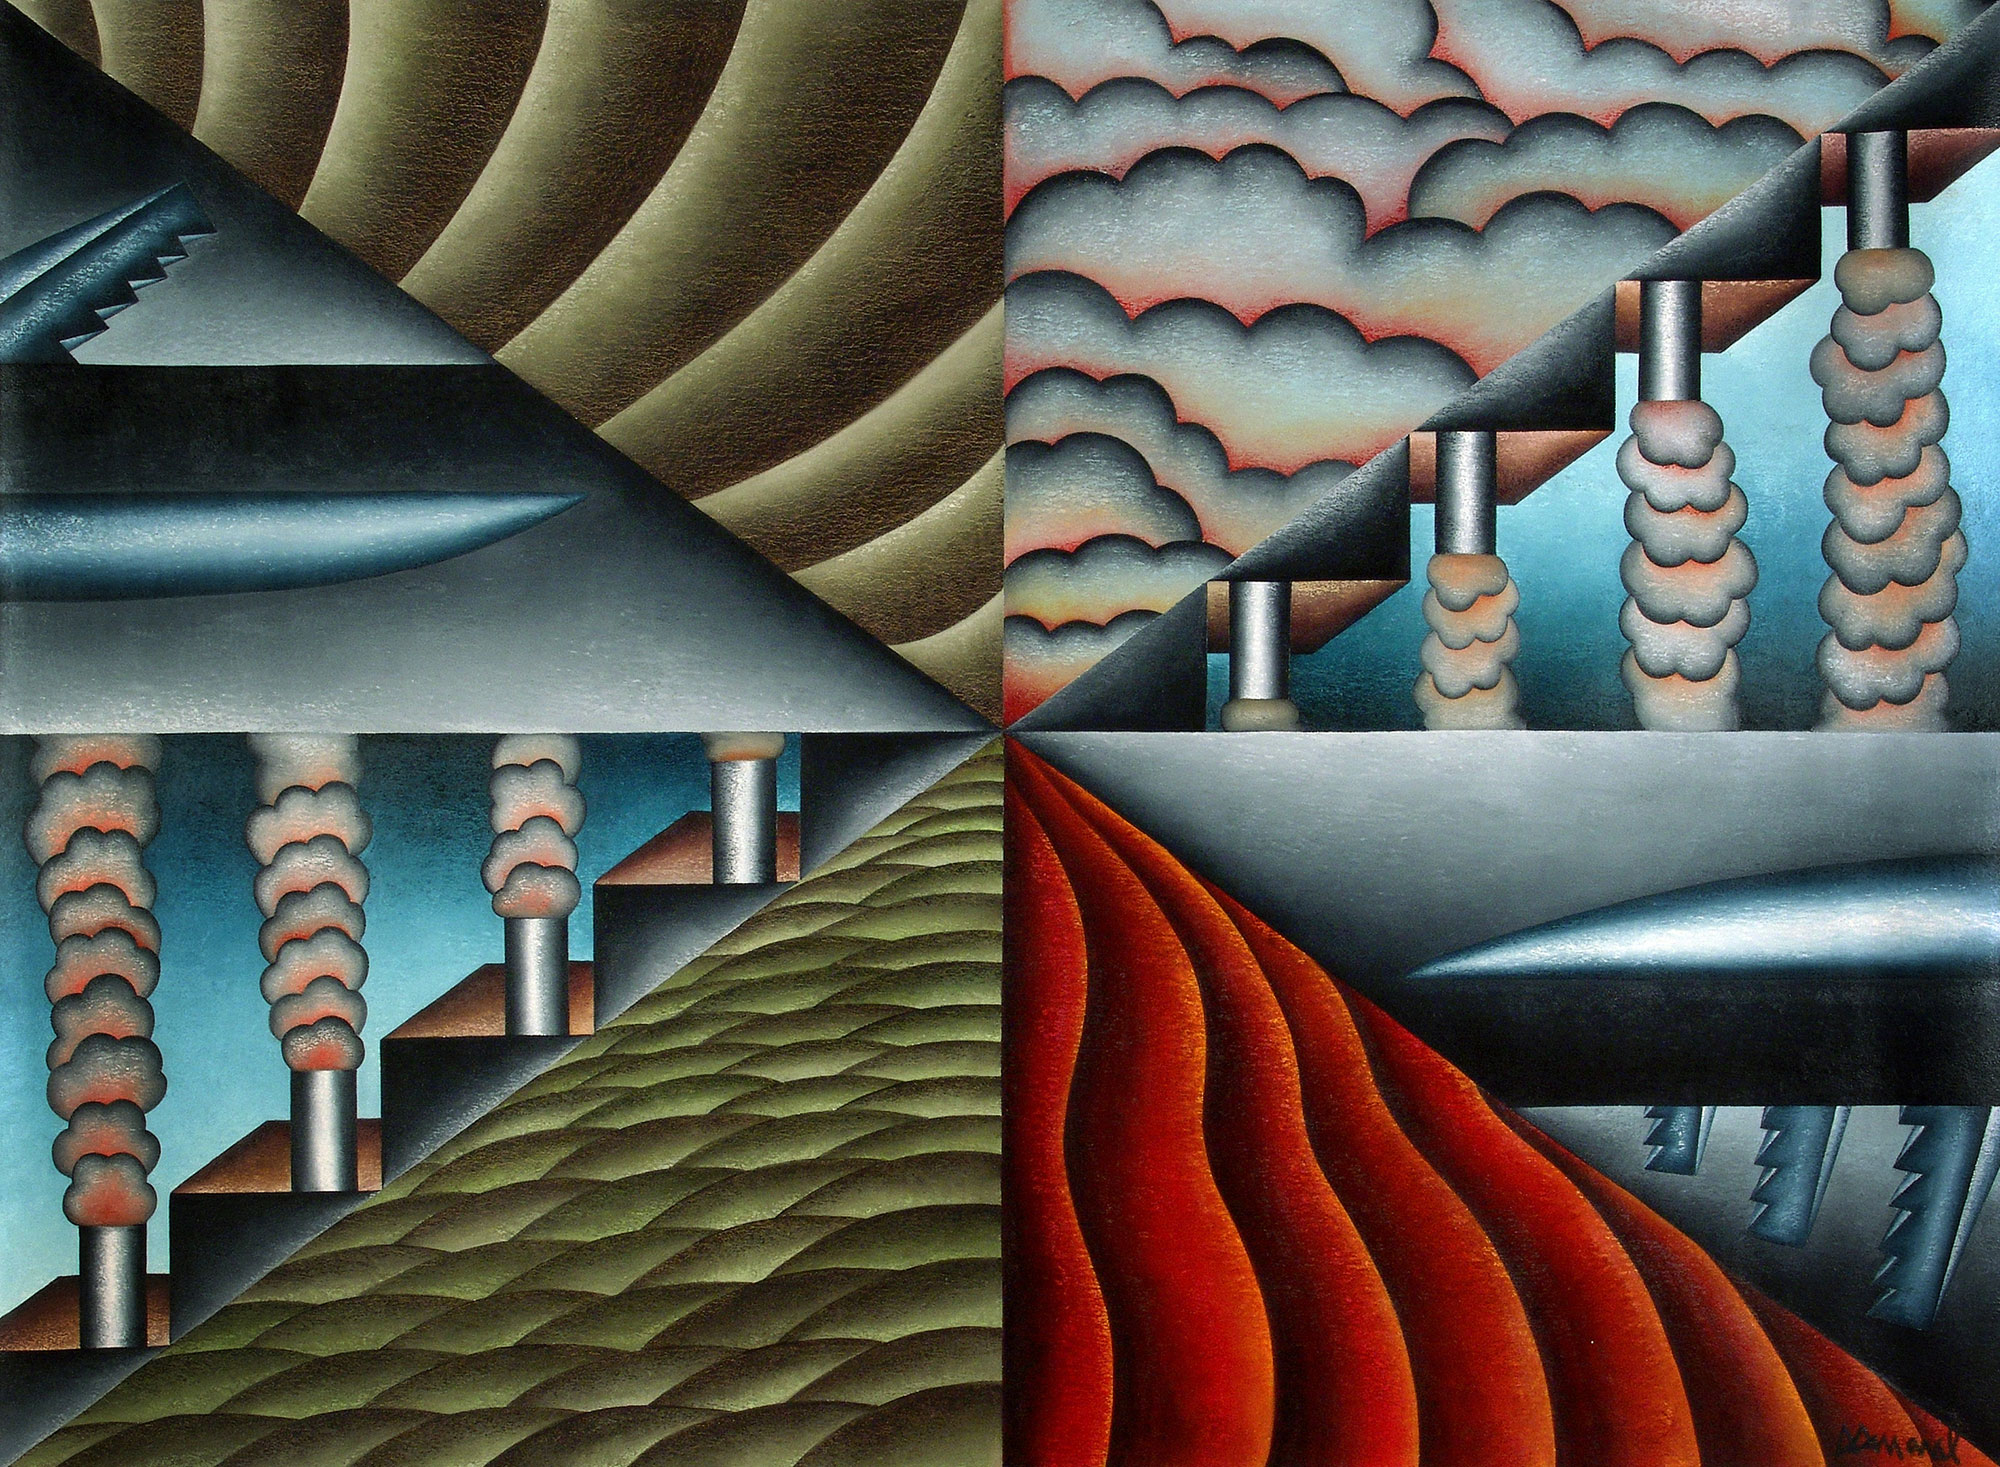 Antonio Henrique Amaral, Antagonic Fields or Fields of Opposites, 72 x 97 inches, 1992, Oil on Canvas